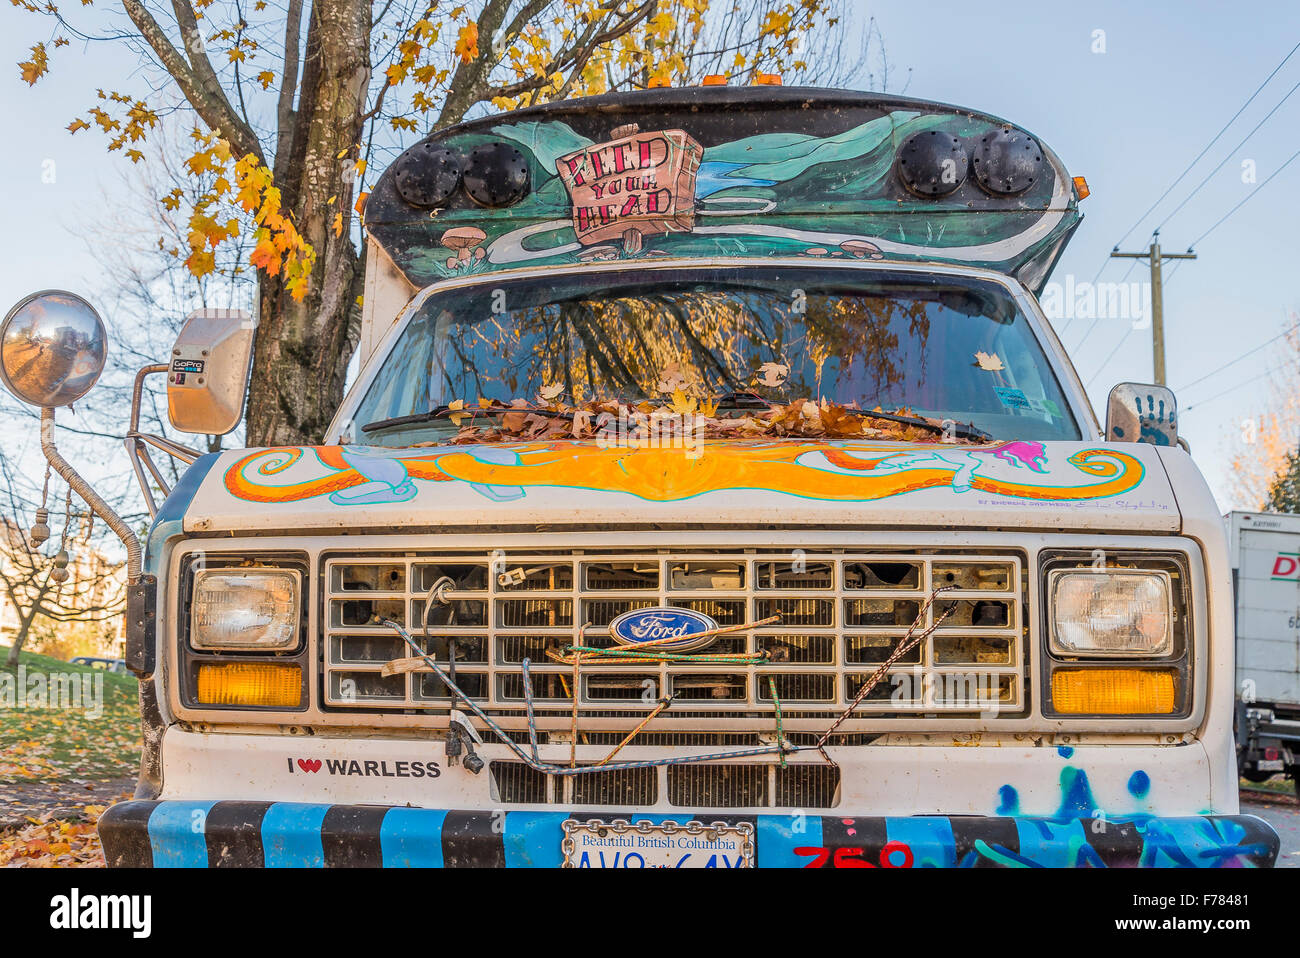 Hippie van bus - Stock Image